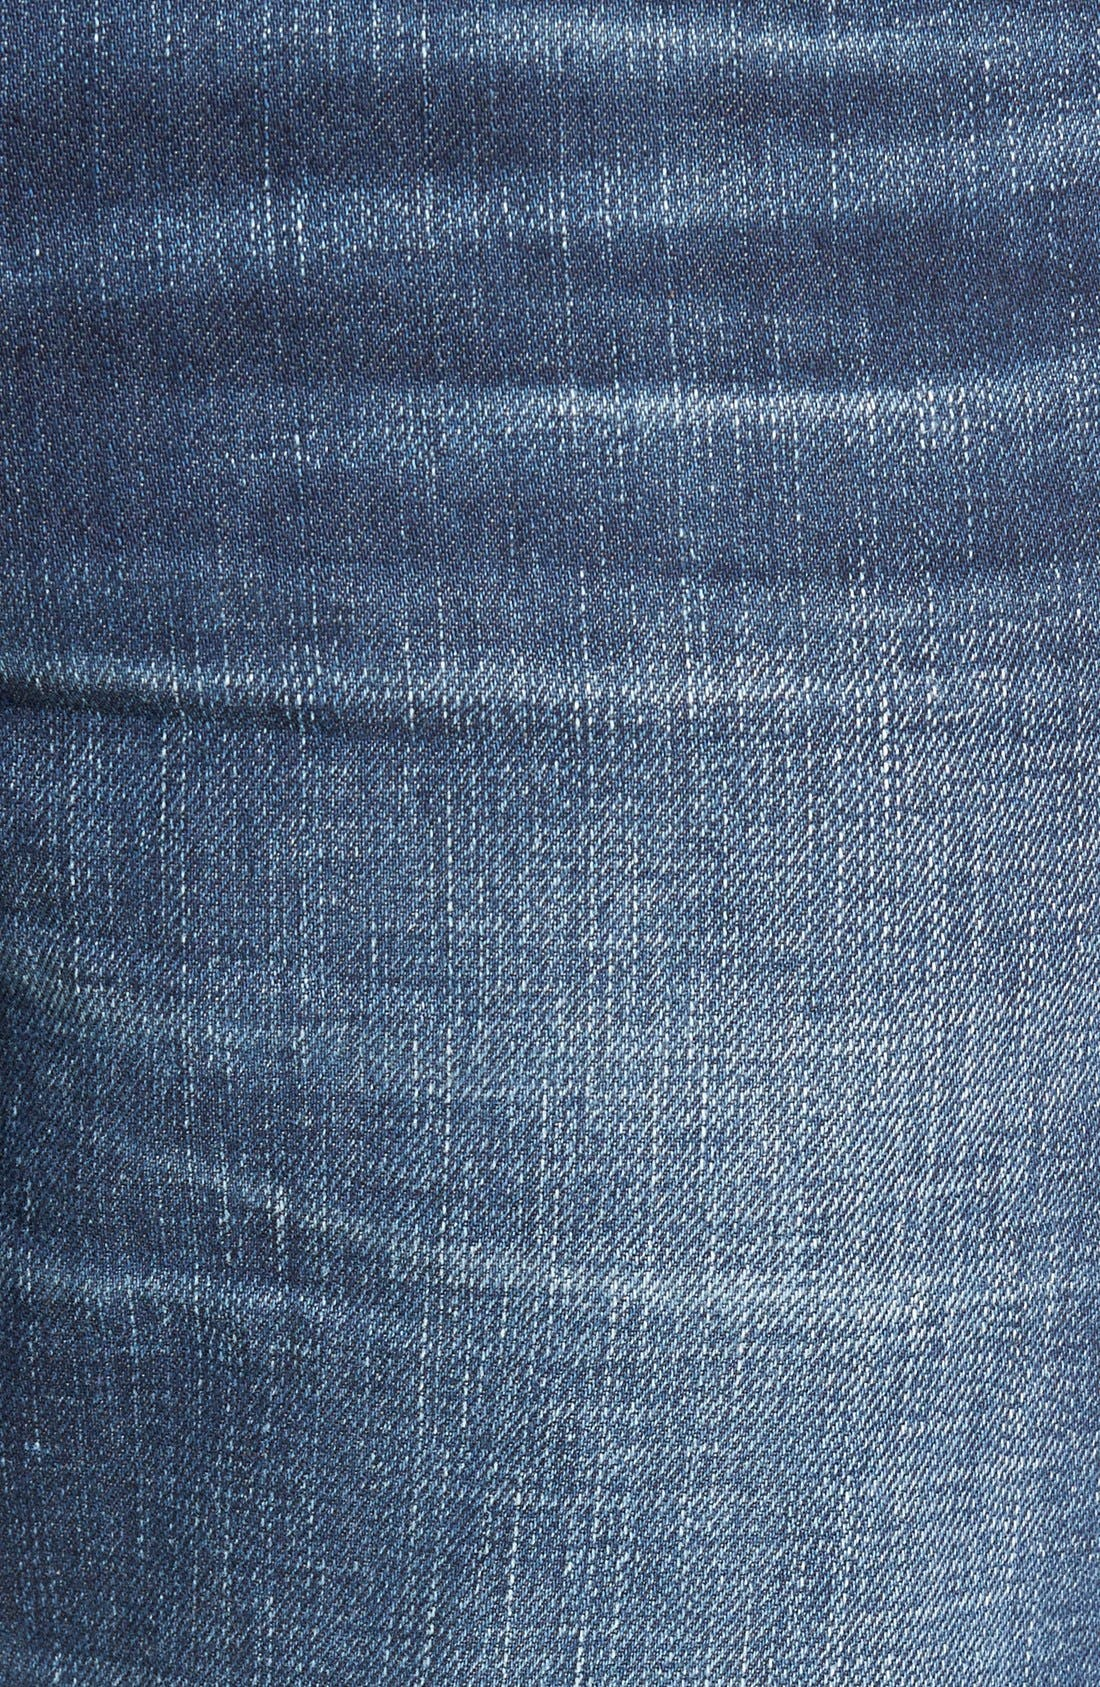 Alternate Image 5  - Citizens of Humanity 'Evans' Relaxed Fit Jeans (Derby)